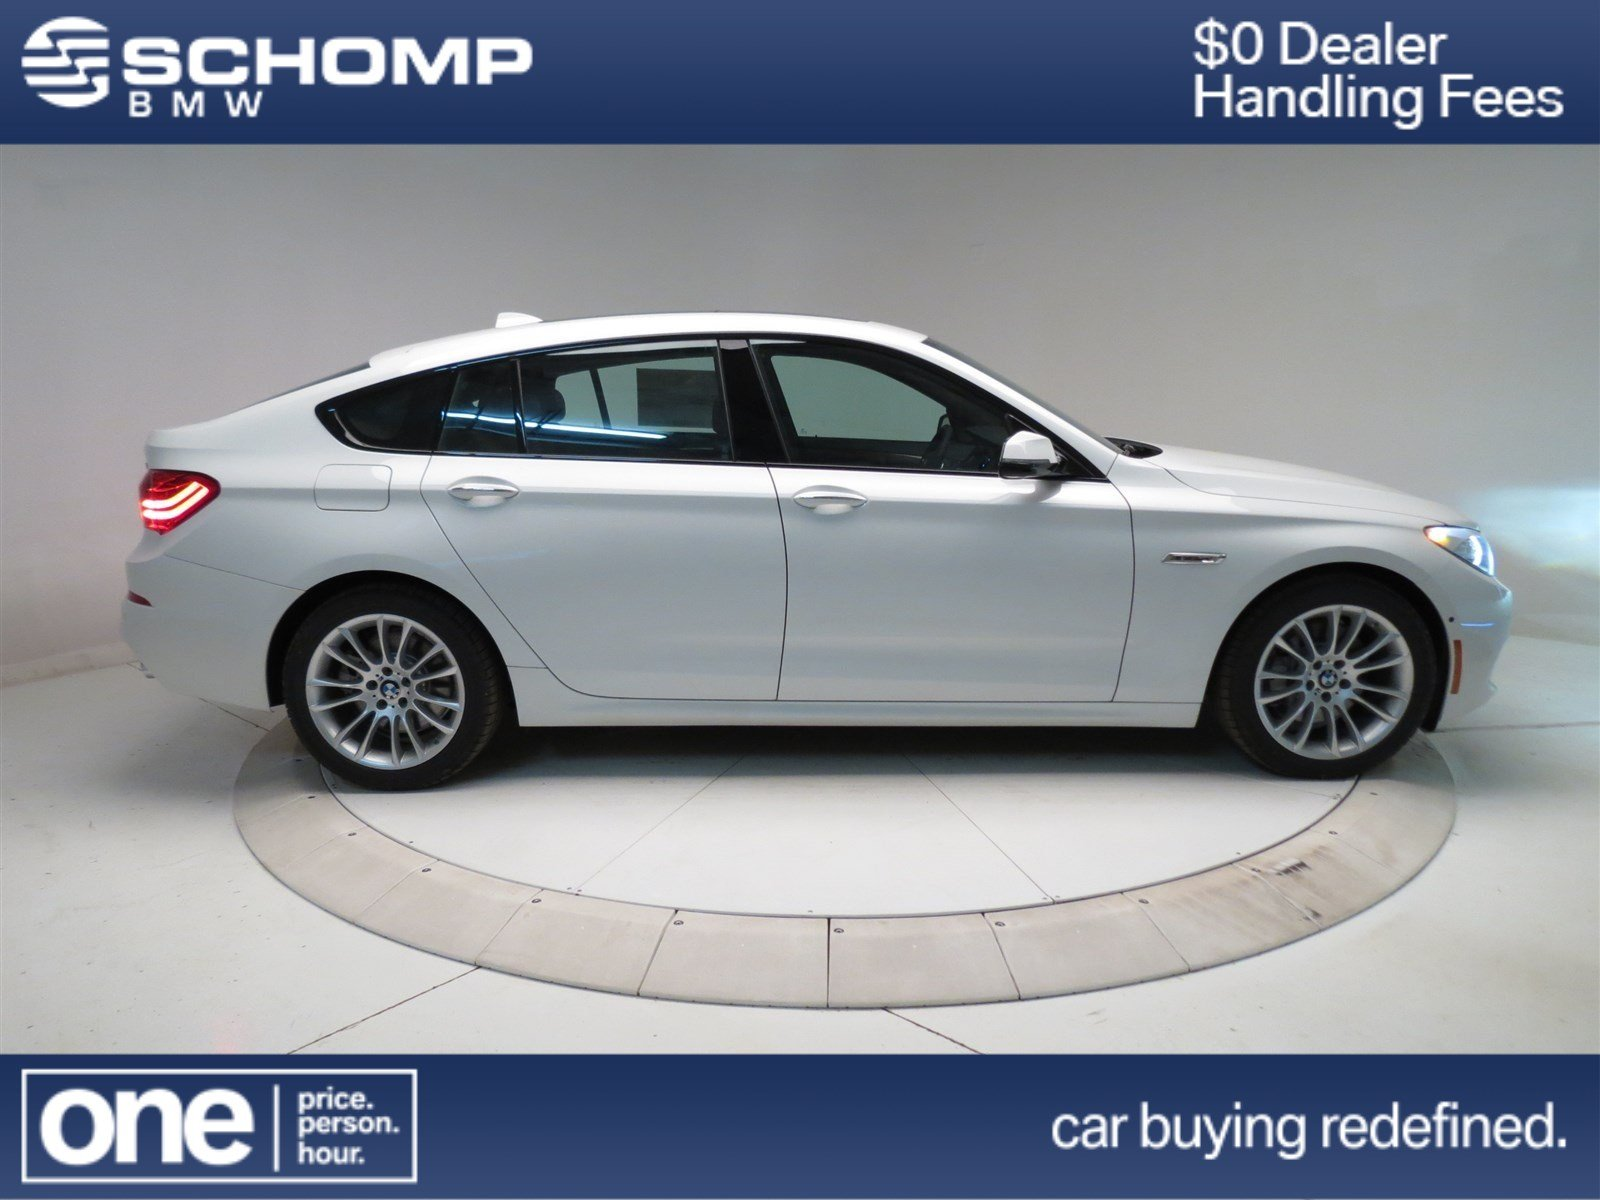 new 2017 bmw 5 series 535i xdrive hatchback in highlands ranch 1b70897 schomp bmw. Black Bedroom Furniture Sets. Home Design Ideas